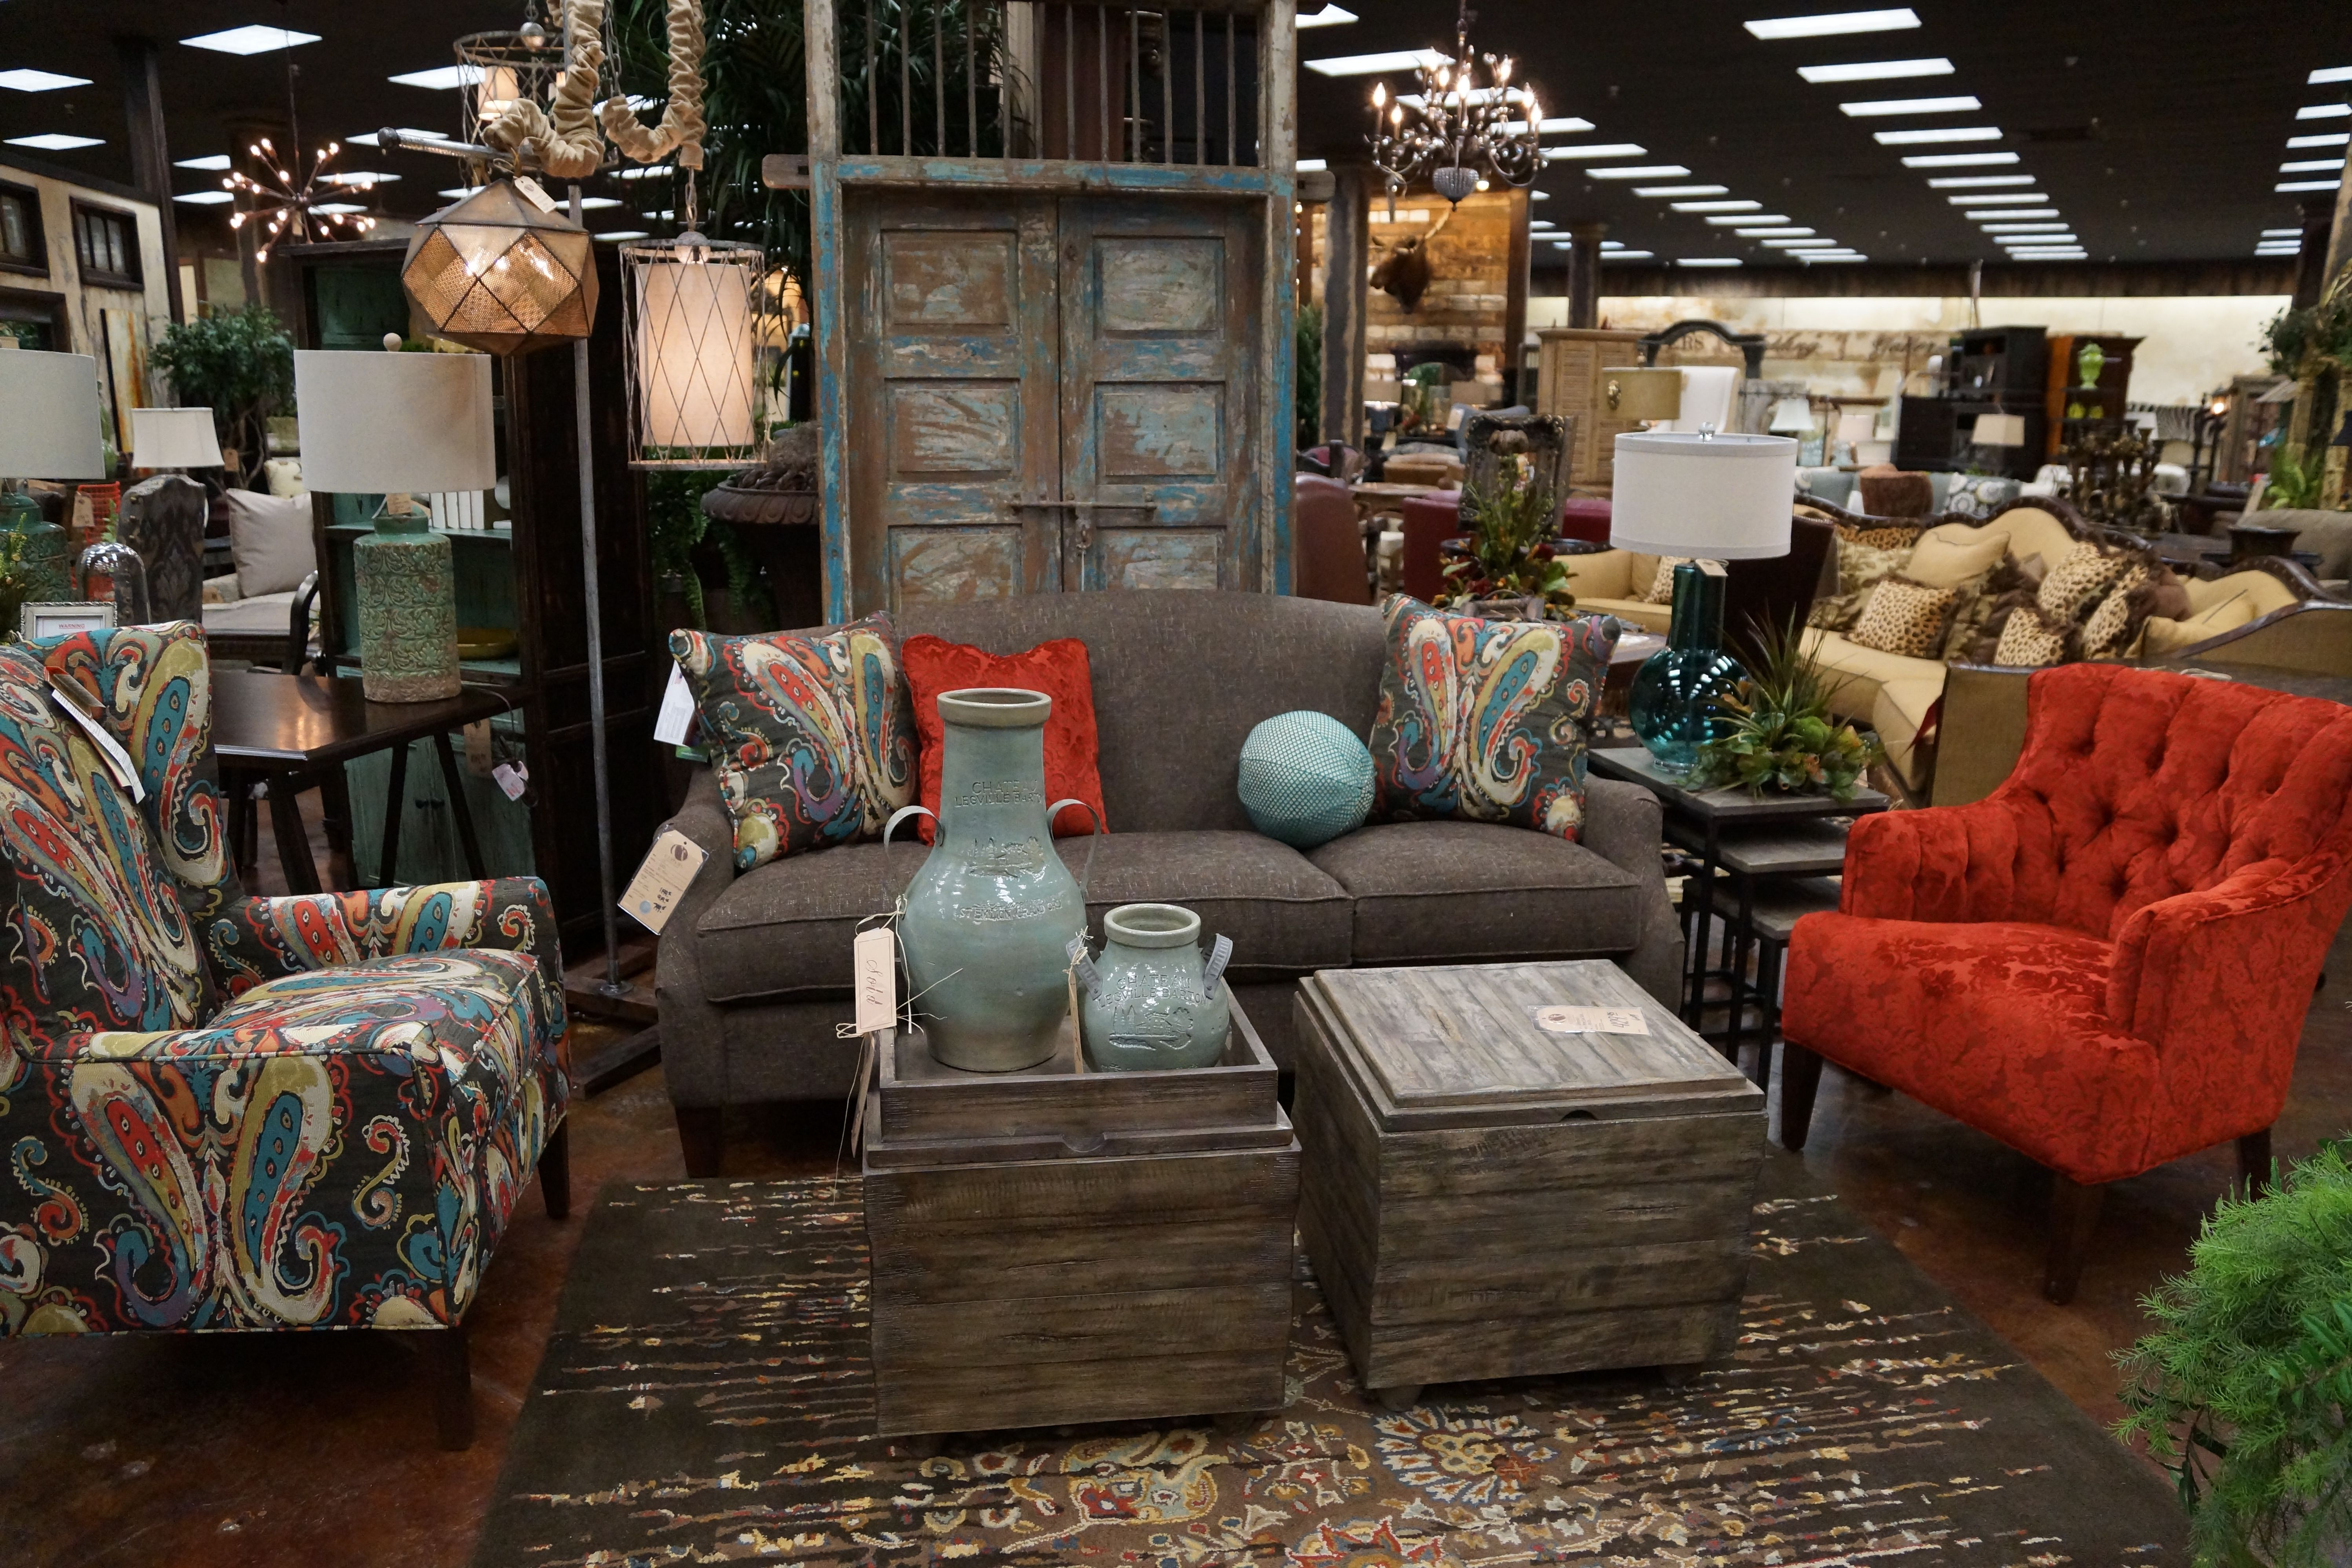 Come In And Customize Your Own Craftmaster Pieces Today. Available At CARTERu0027S  FURNITURE, Midland